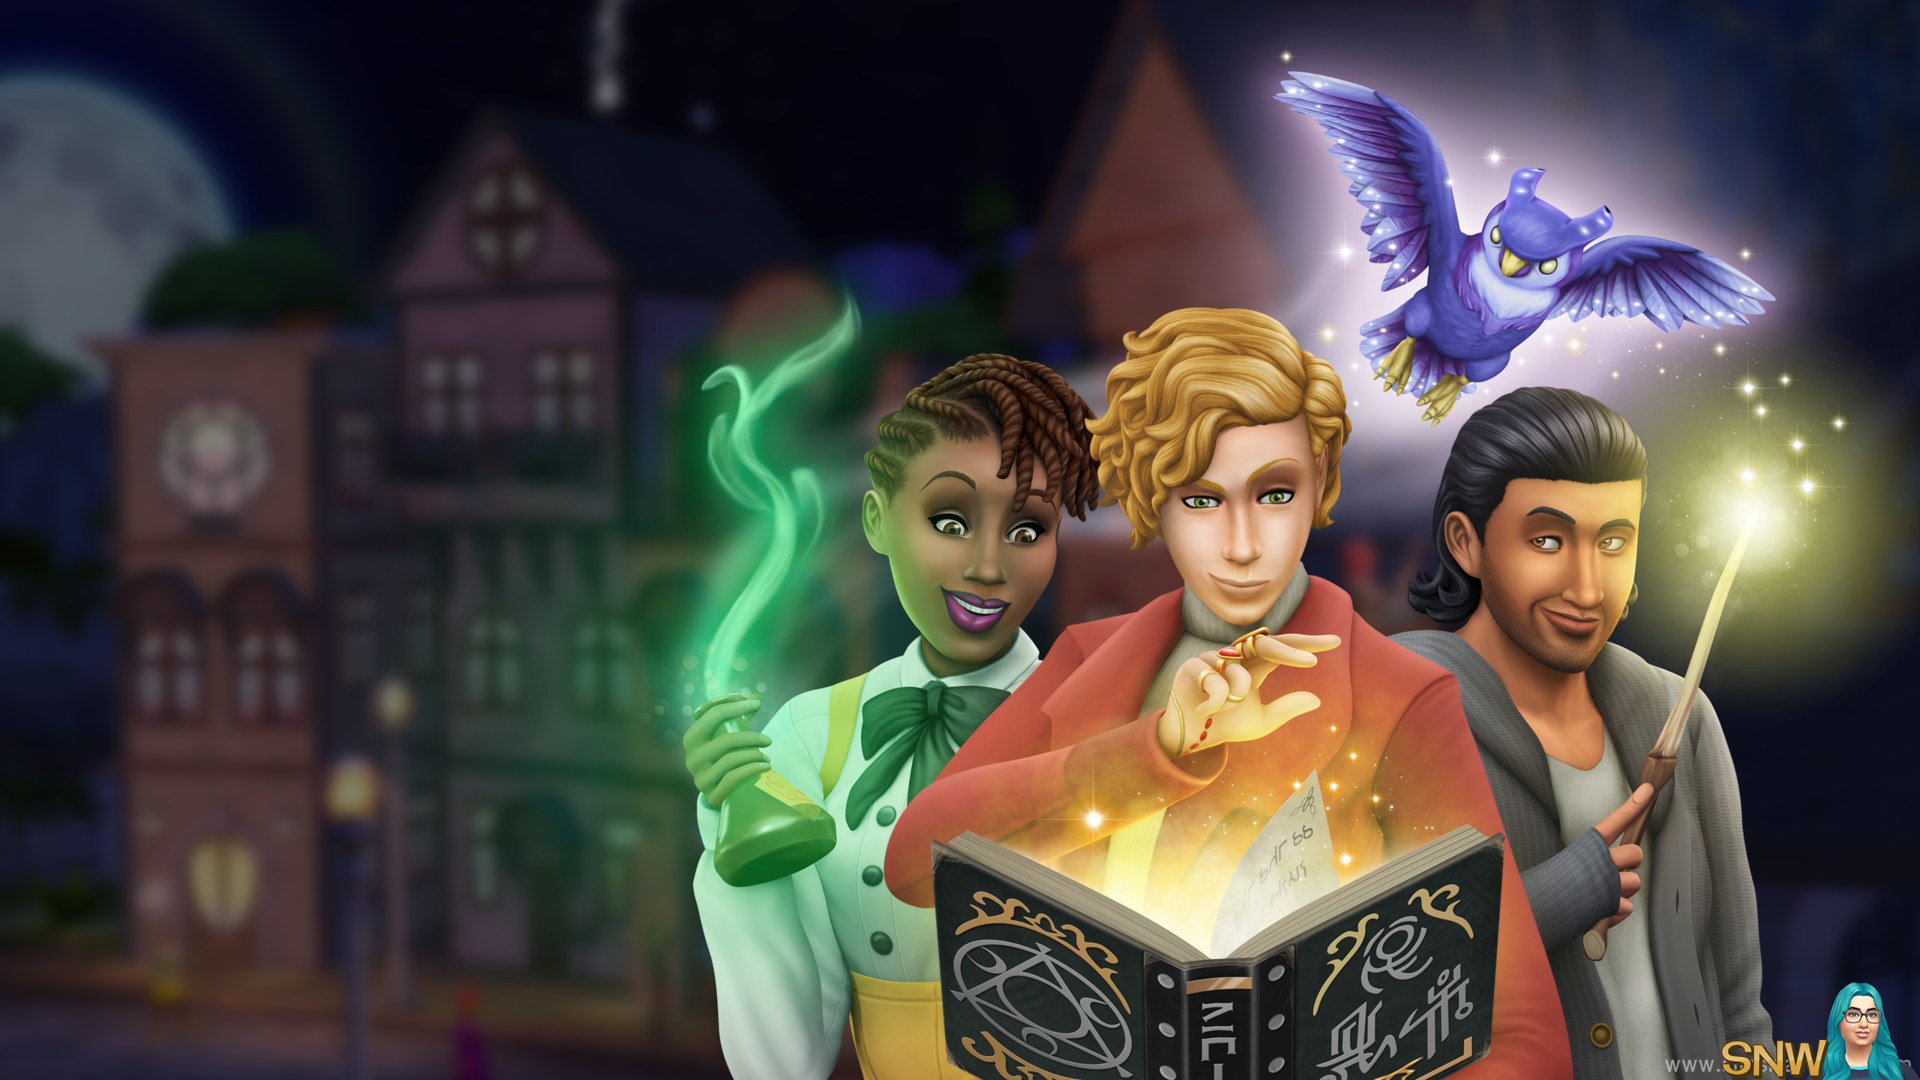 The Sims 4: Realm of Magic 2560x1440 widescreen wallpaper (right)